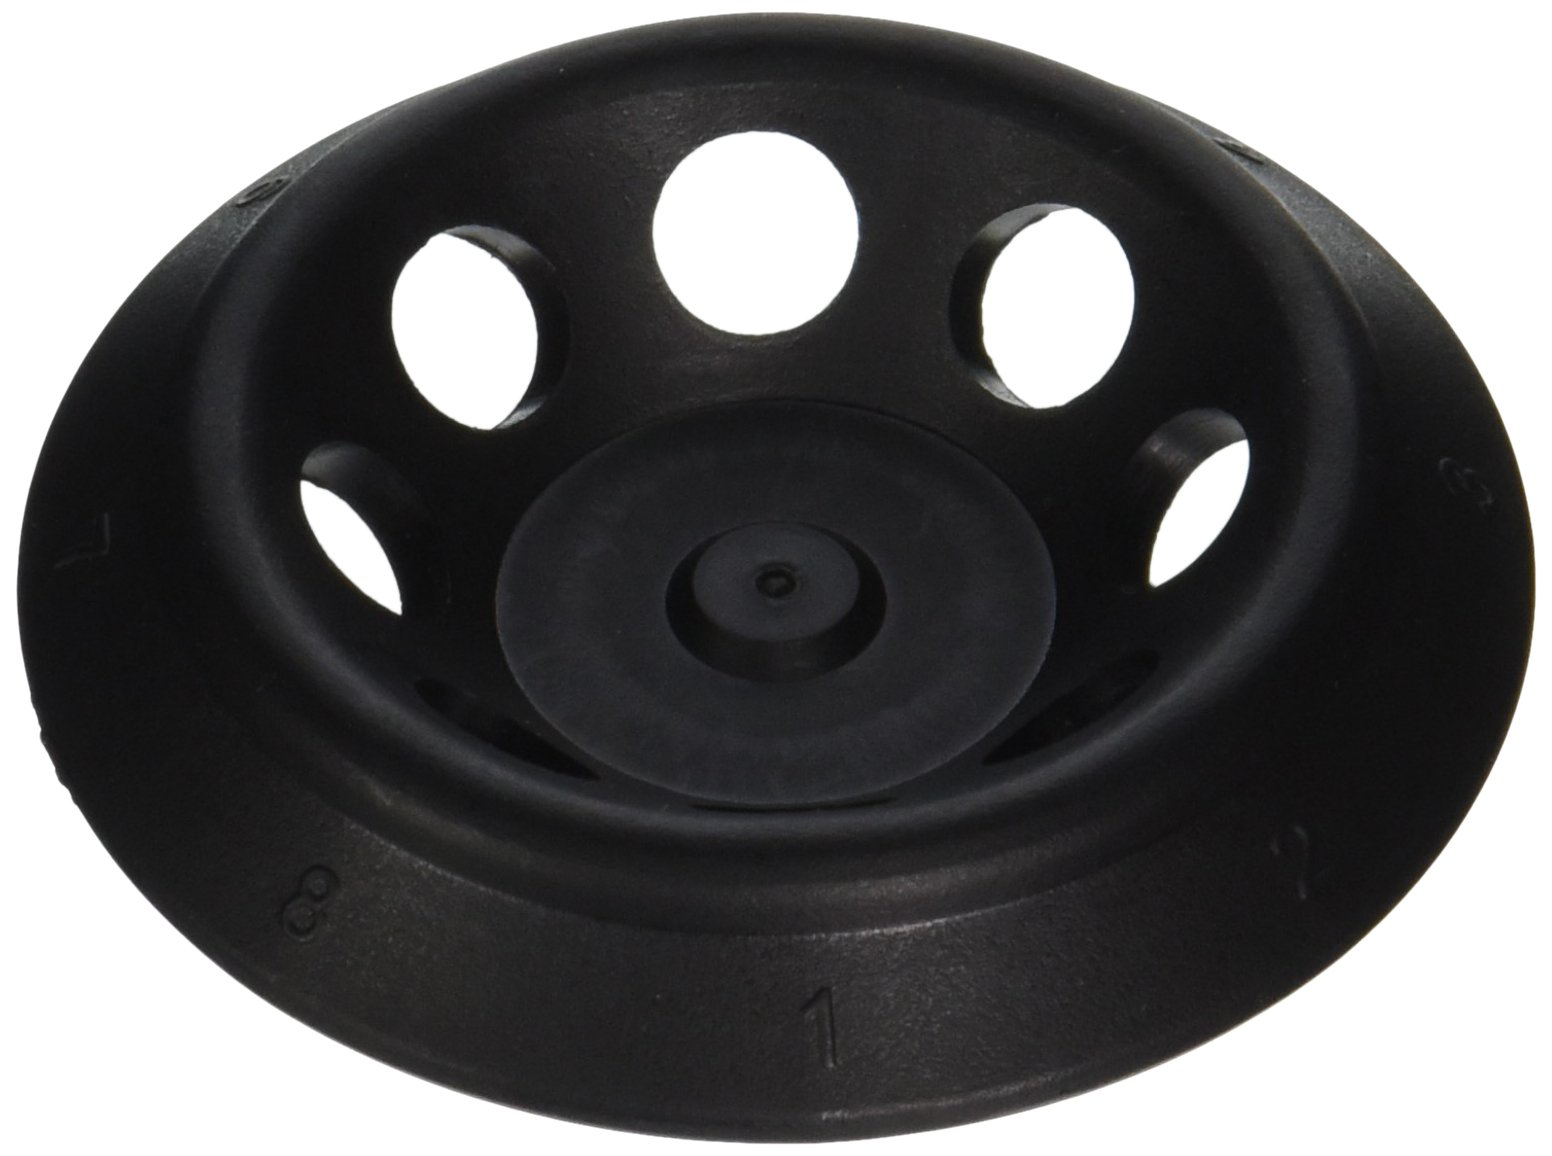 Benchmark Scientific C1008-ROT Round Rotor, 8 Position